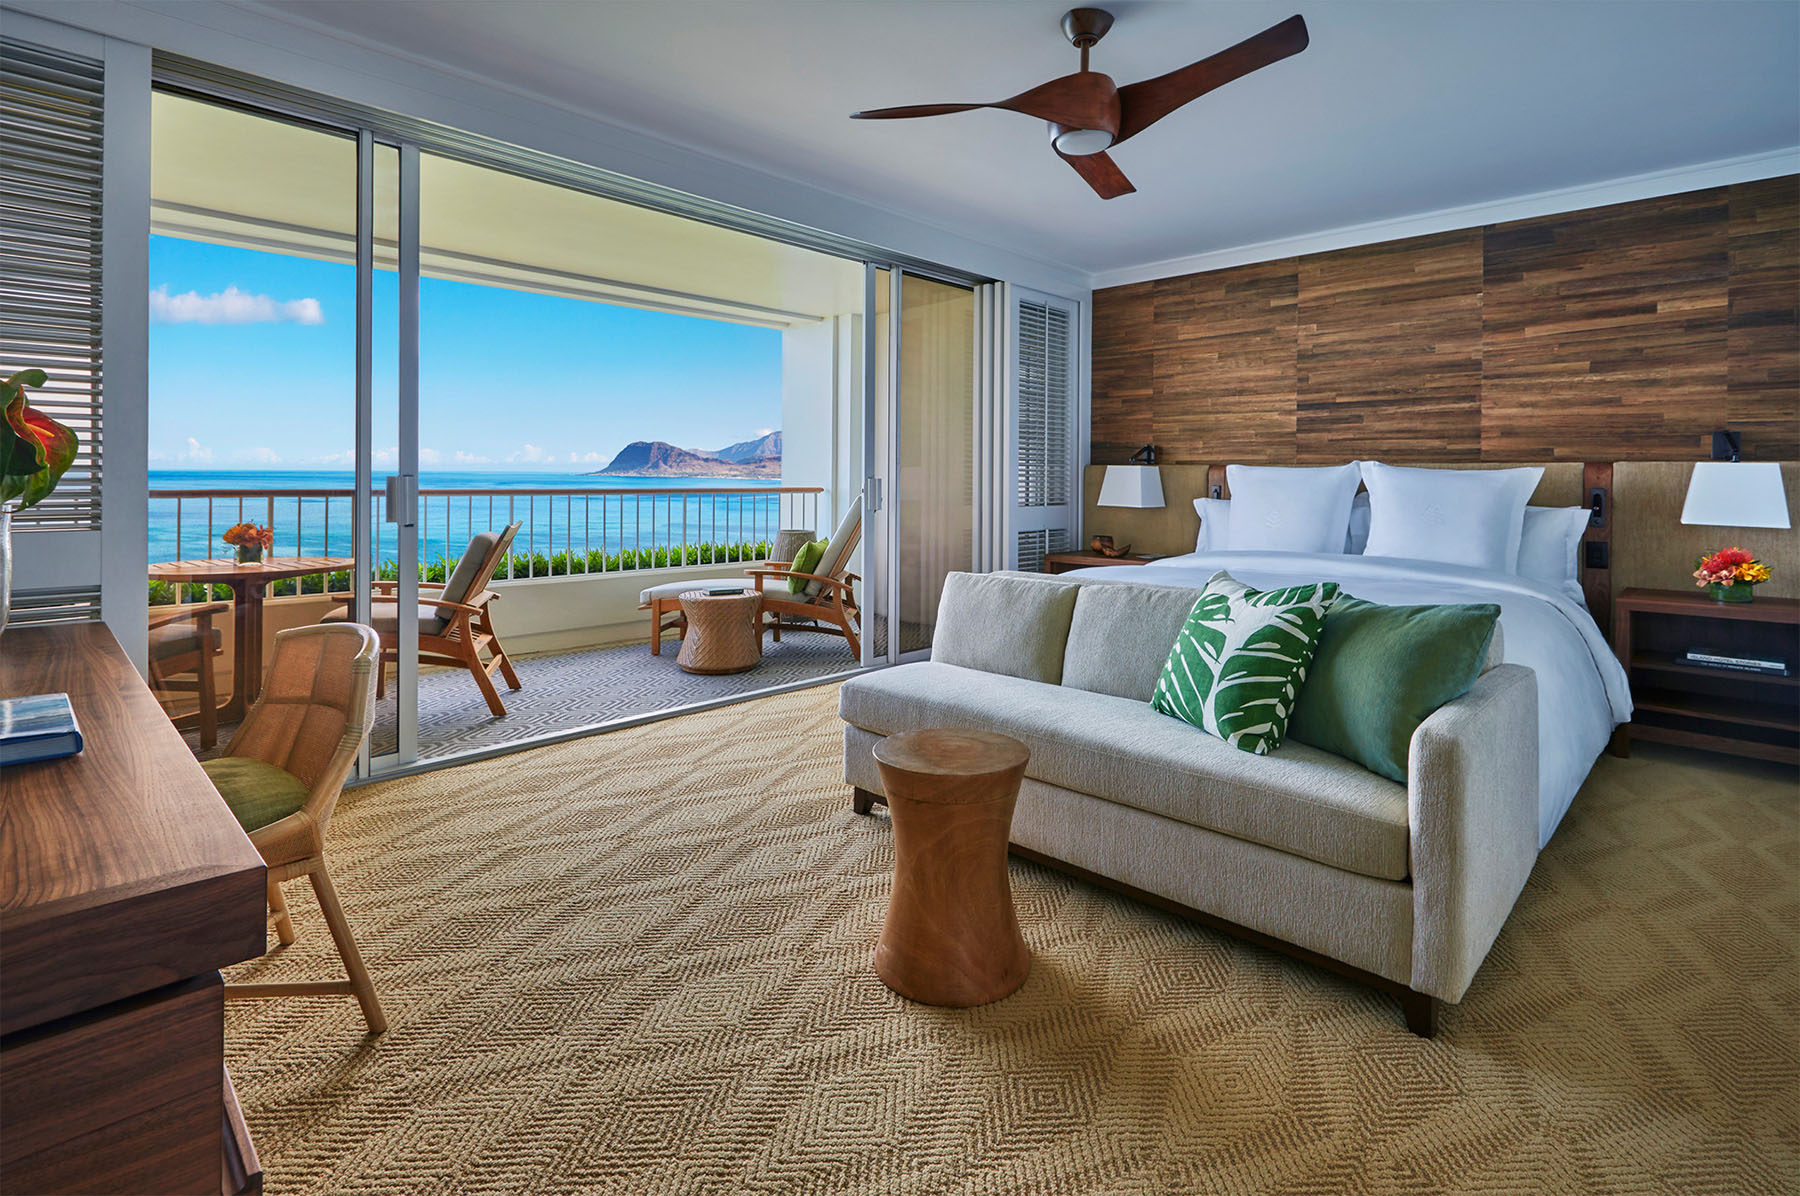 Ko' Olina Four Seasons, A Perfect Quick Get Away On Oahu's Other Side